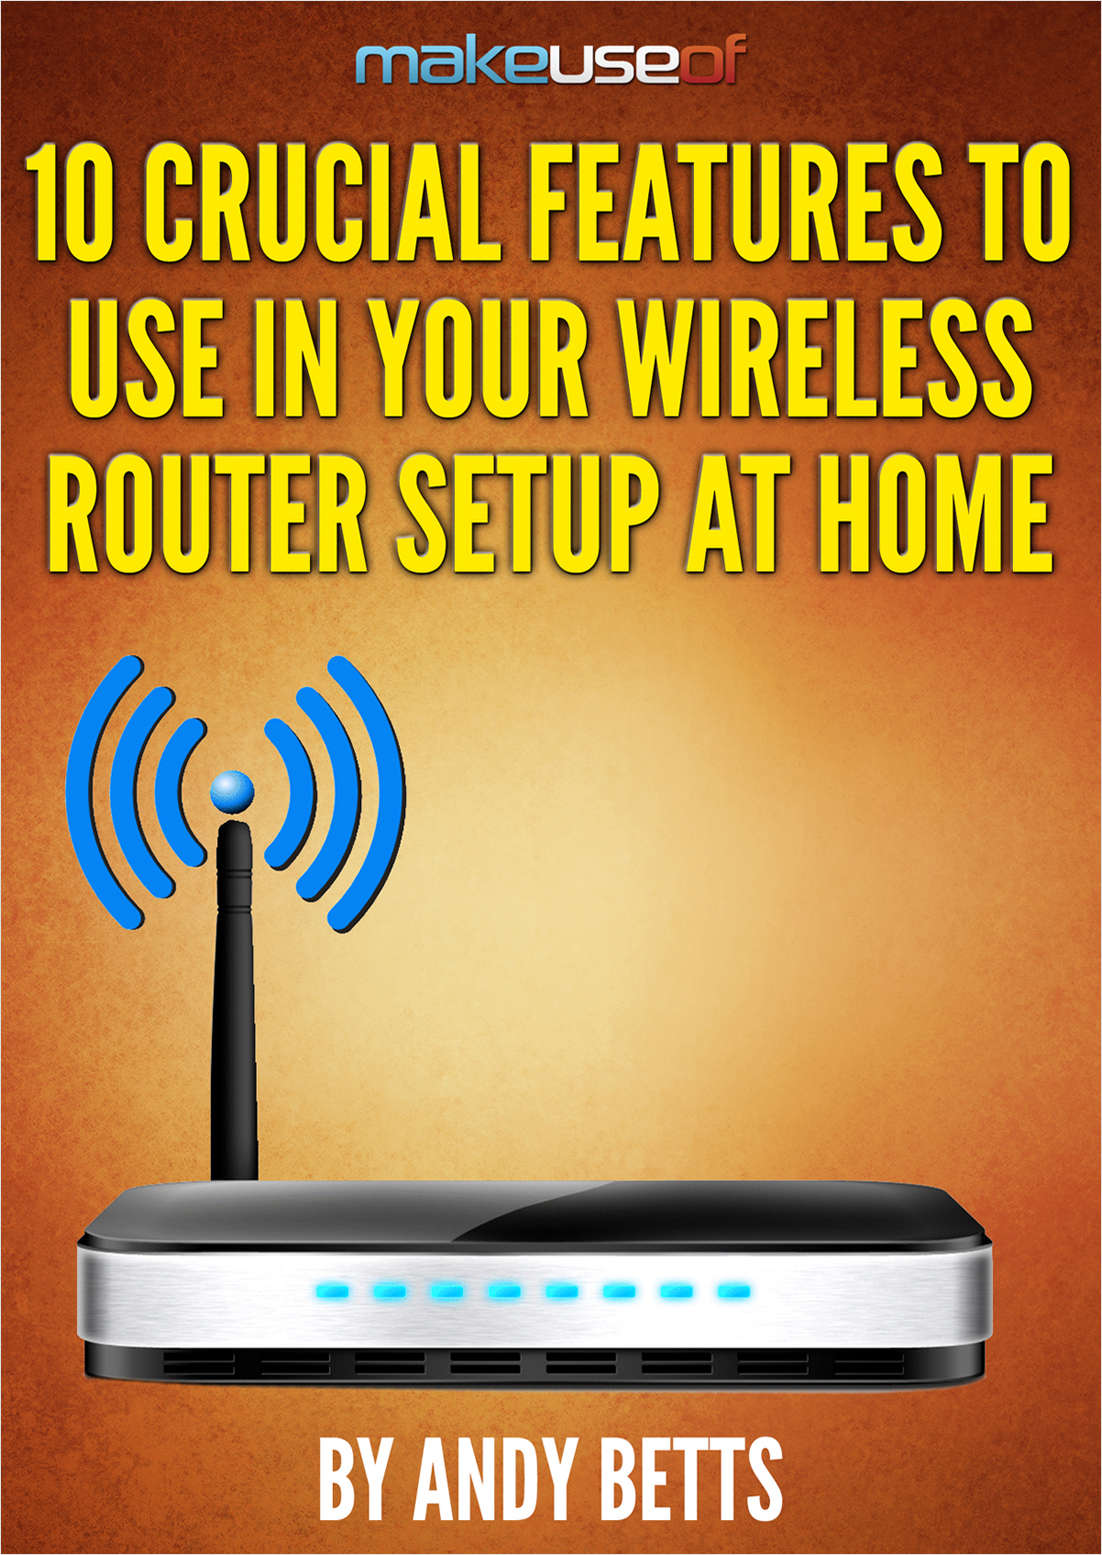 10 Crucial Features to Use in Your Wireless Router Setup at Home